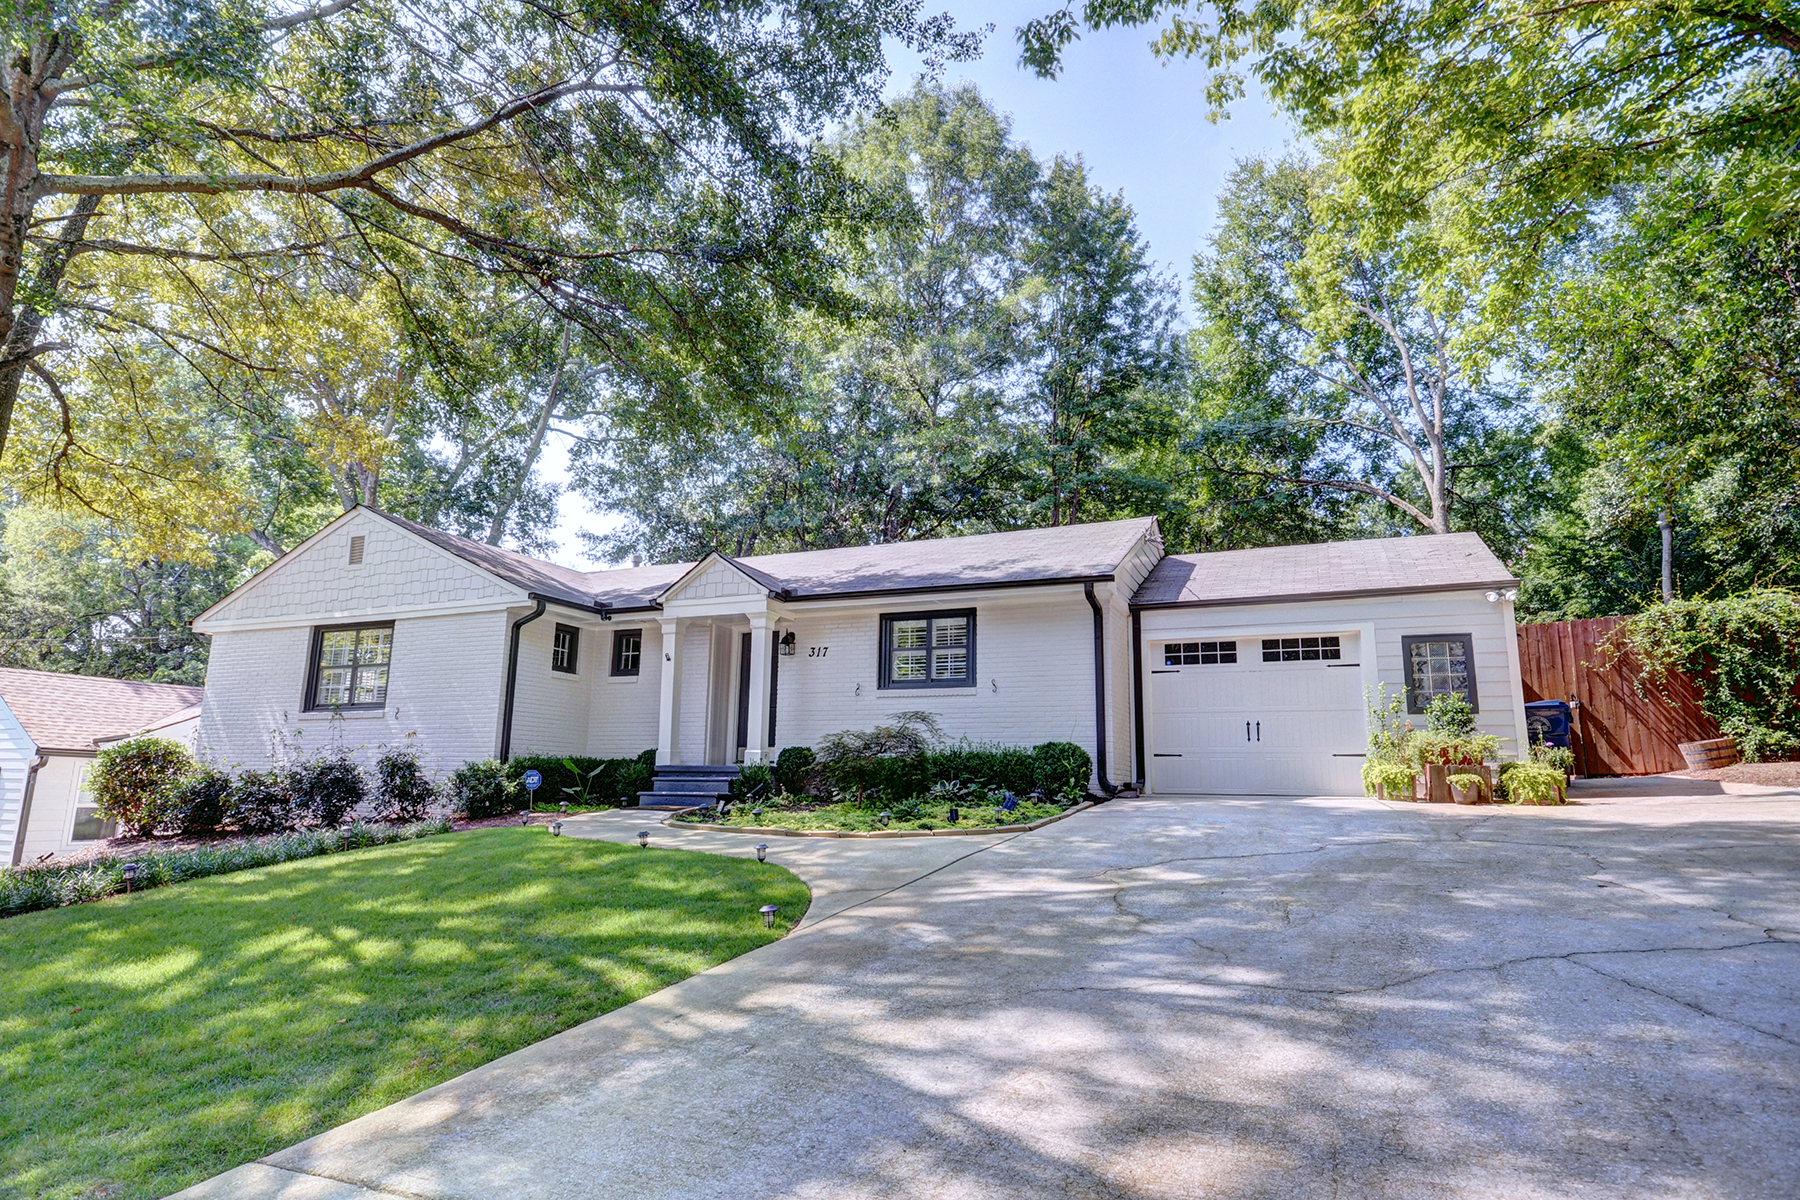 Single Family Home for Sale at Renovated Brick Home in Peachtree Hills 317 Lindbergh Dr Atlanta, Georgia 30305 United States